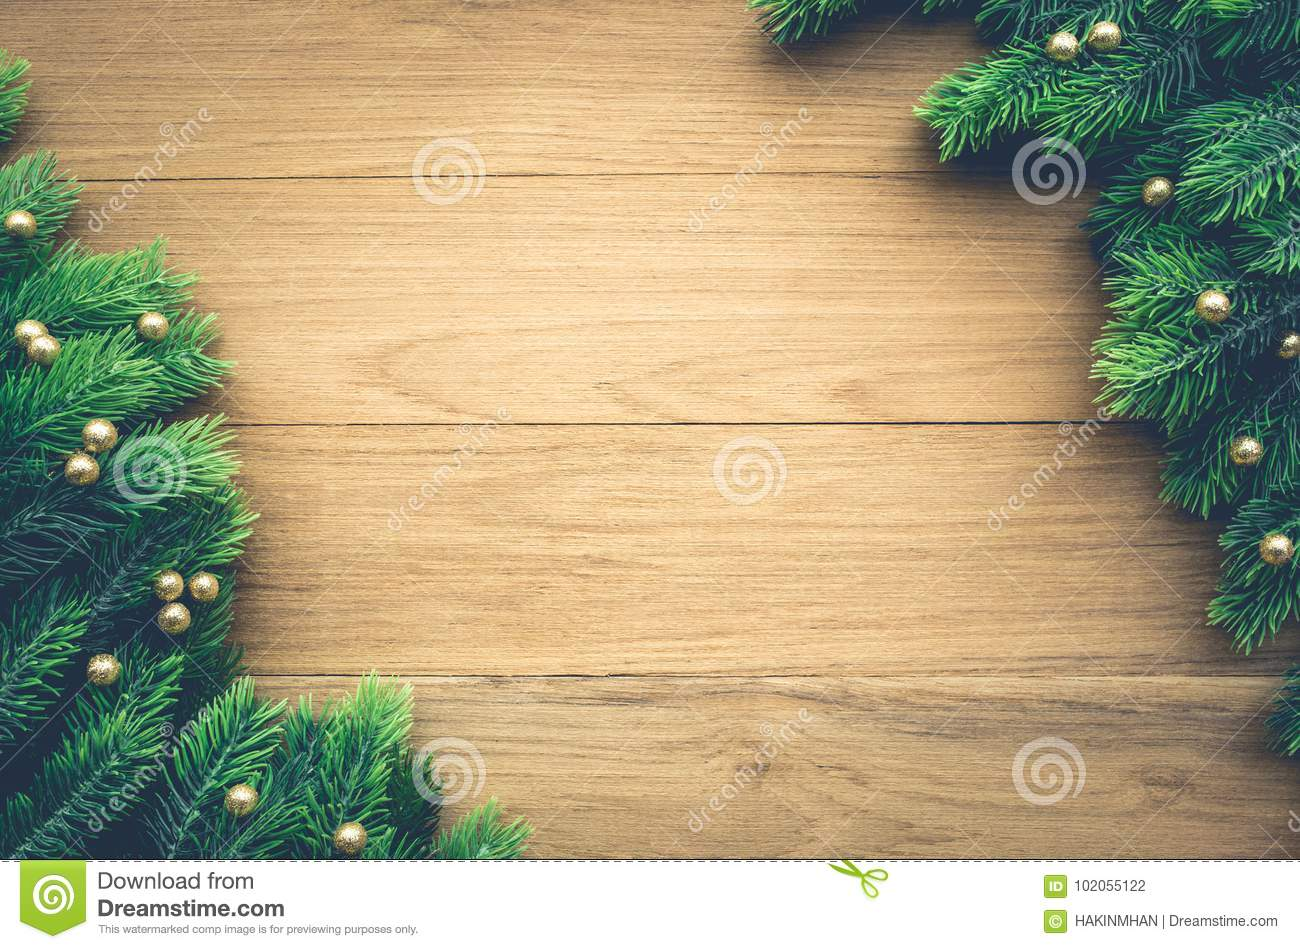 Christmas Background Ideas Concept With Pine Branch Decoration On